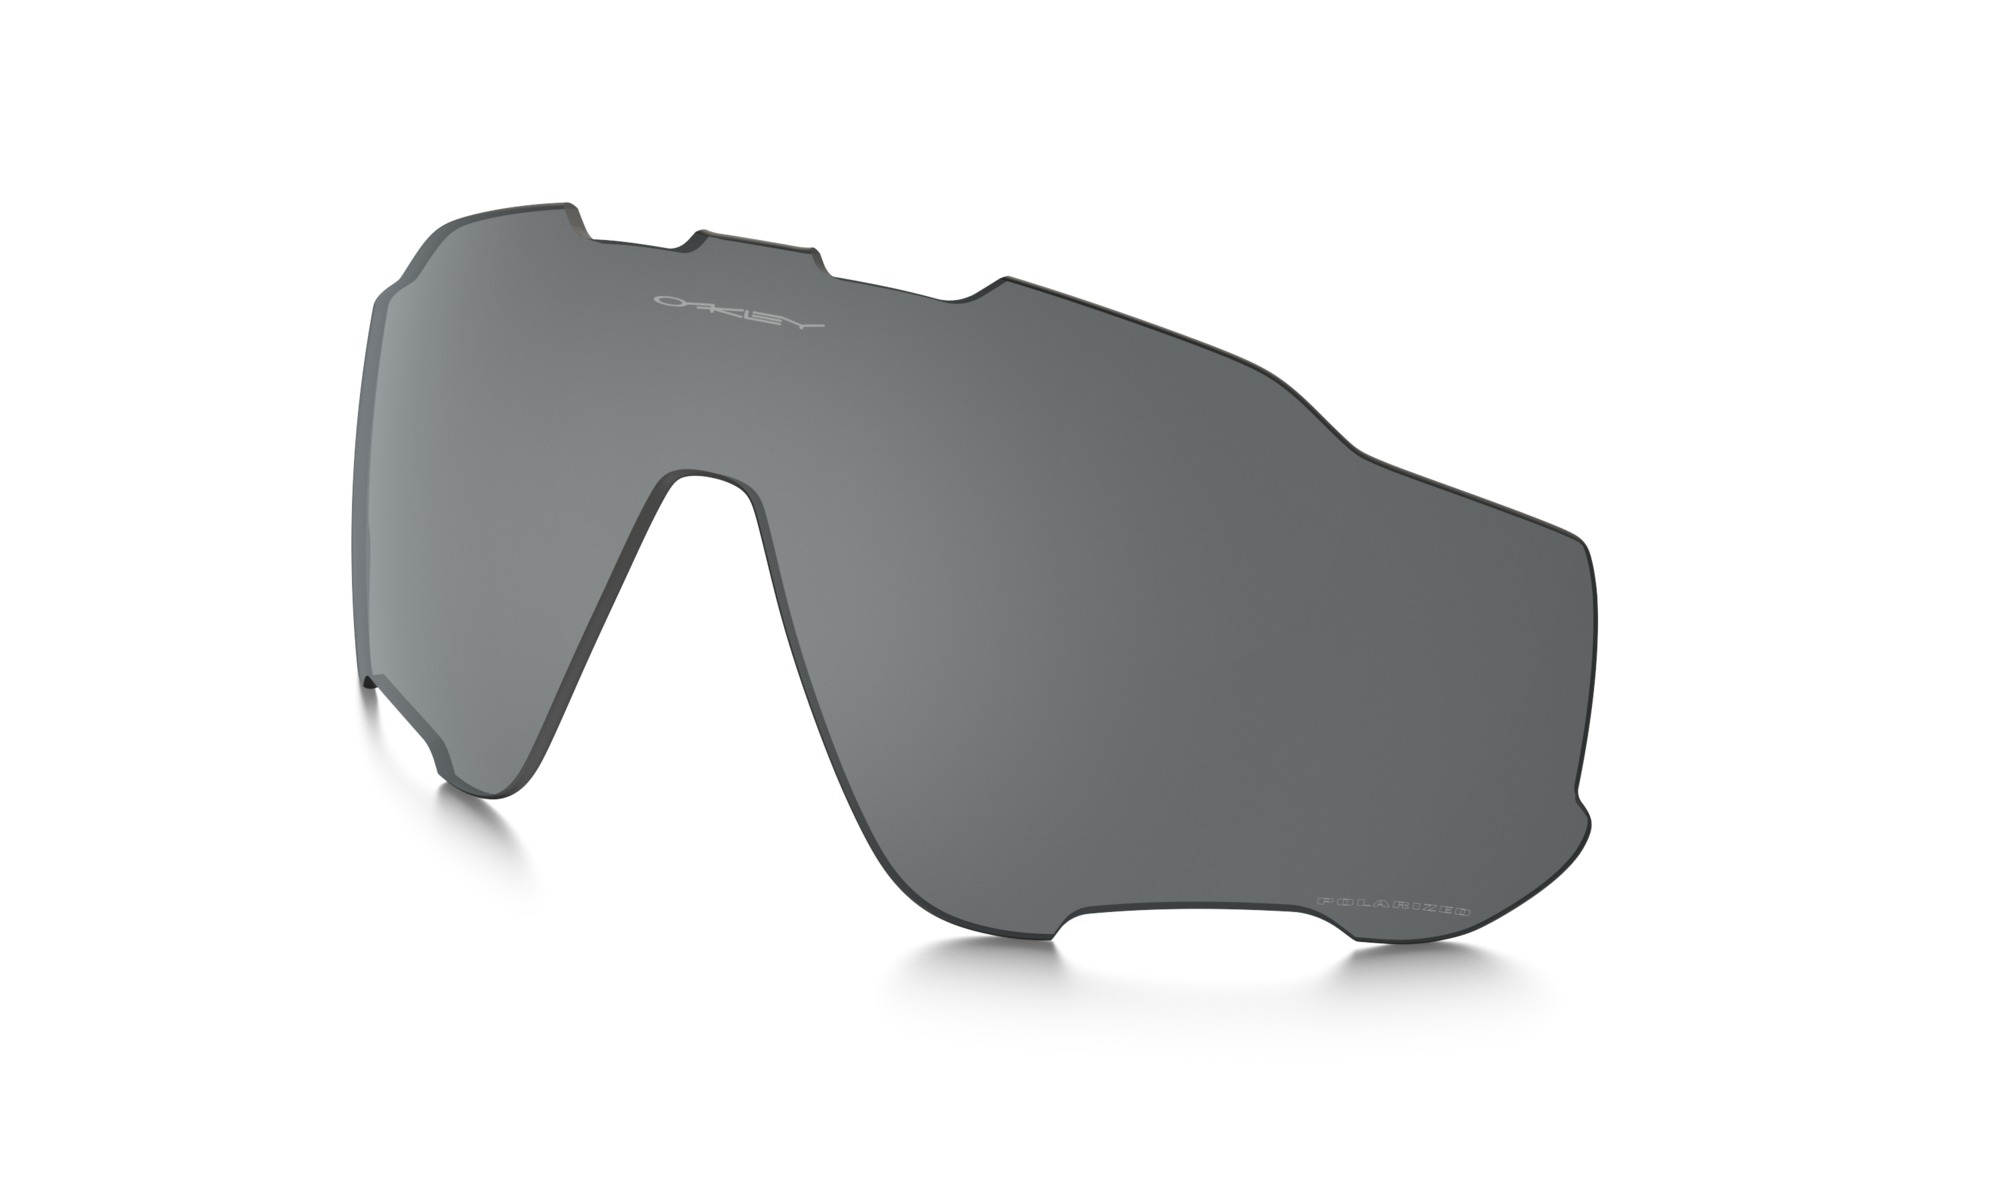 04ae4736355 ... purchase people who bought oakley radar ev path photochromic sunglasses  also bought c0133 686cd